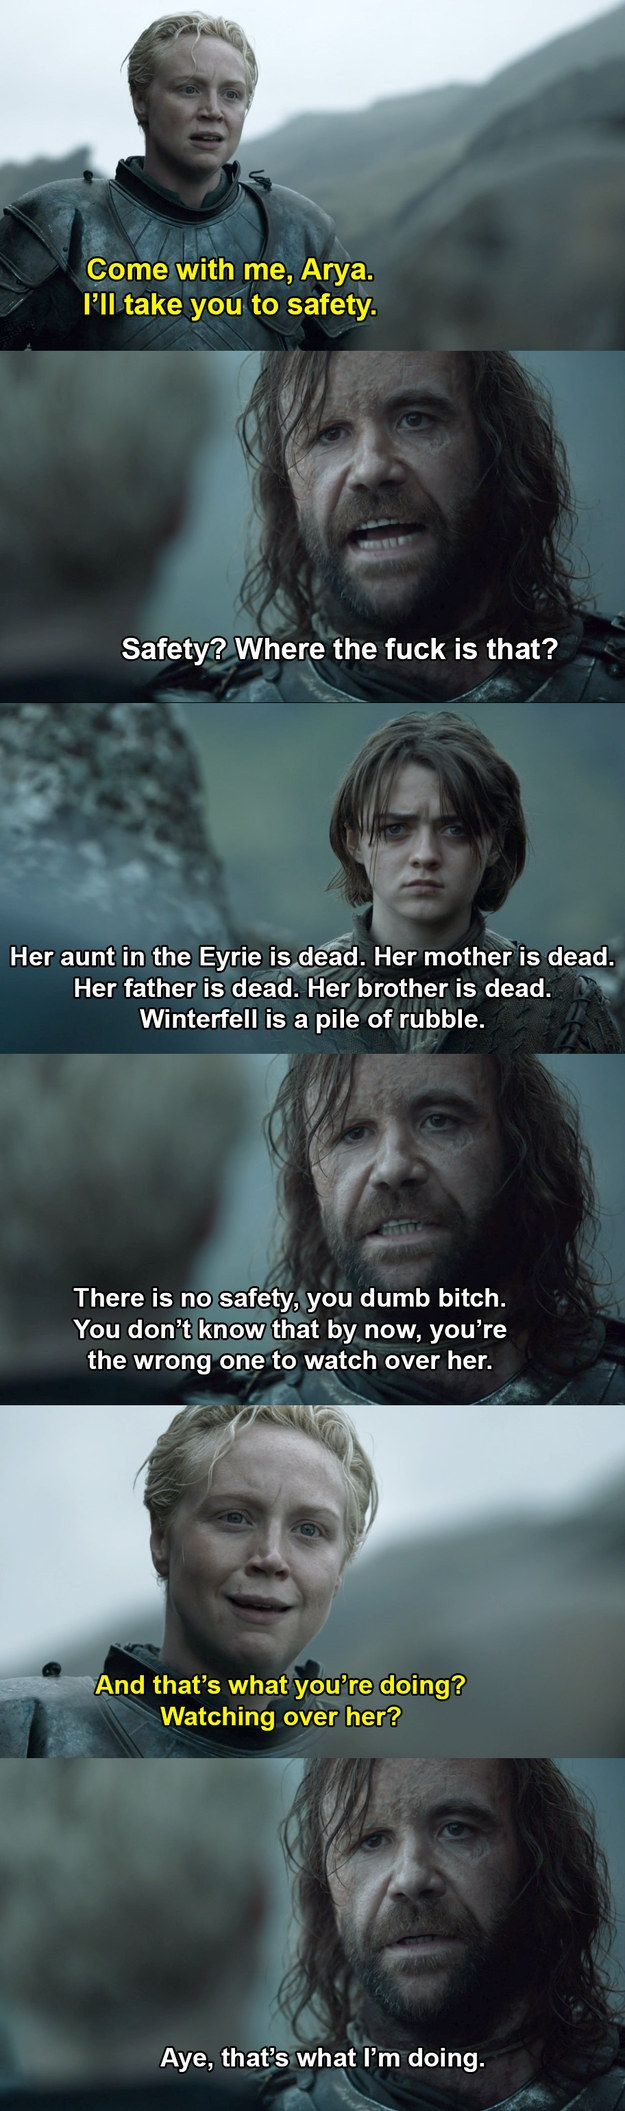 "Or he says something about Arya that makes you think there's a good person underneath that gruff exterior. | Proof That The Hound Is The Real Hero Of ""Game Of Thrones"""